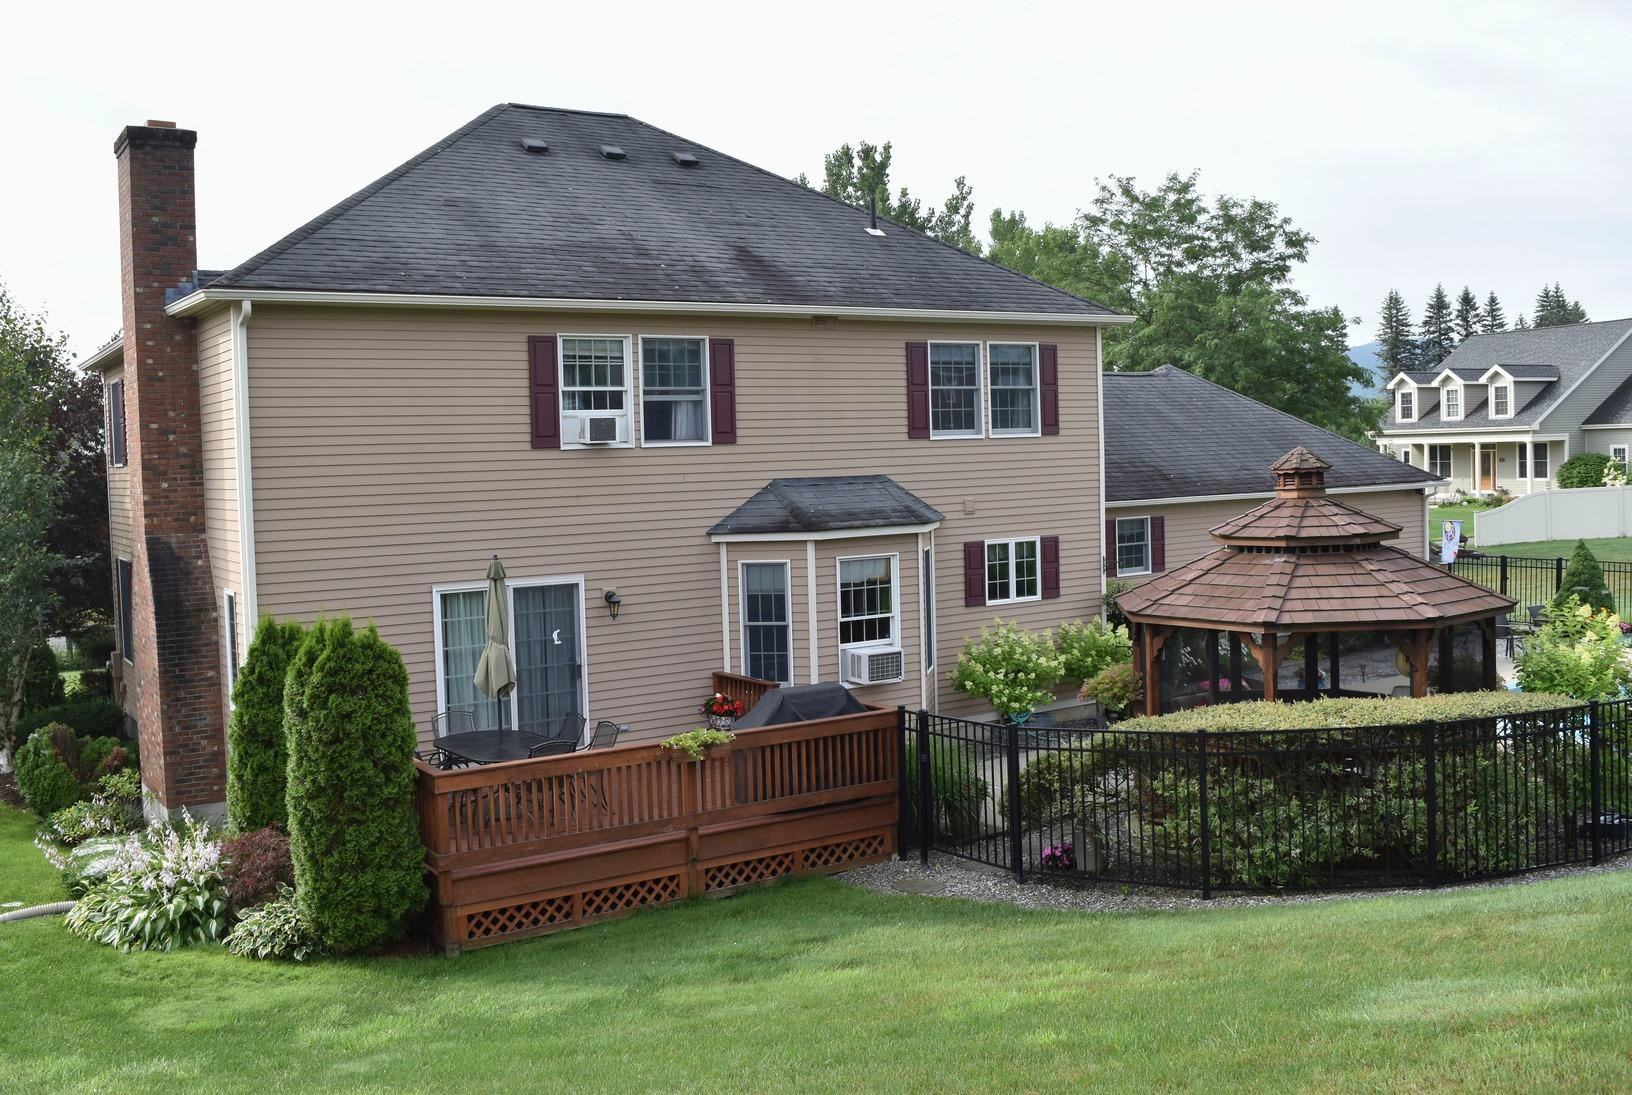 Pittsfield, MA Roof Replacement IKO Granite Black Dynasty Shingles - Before Photo